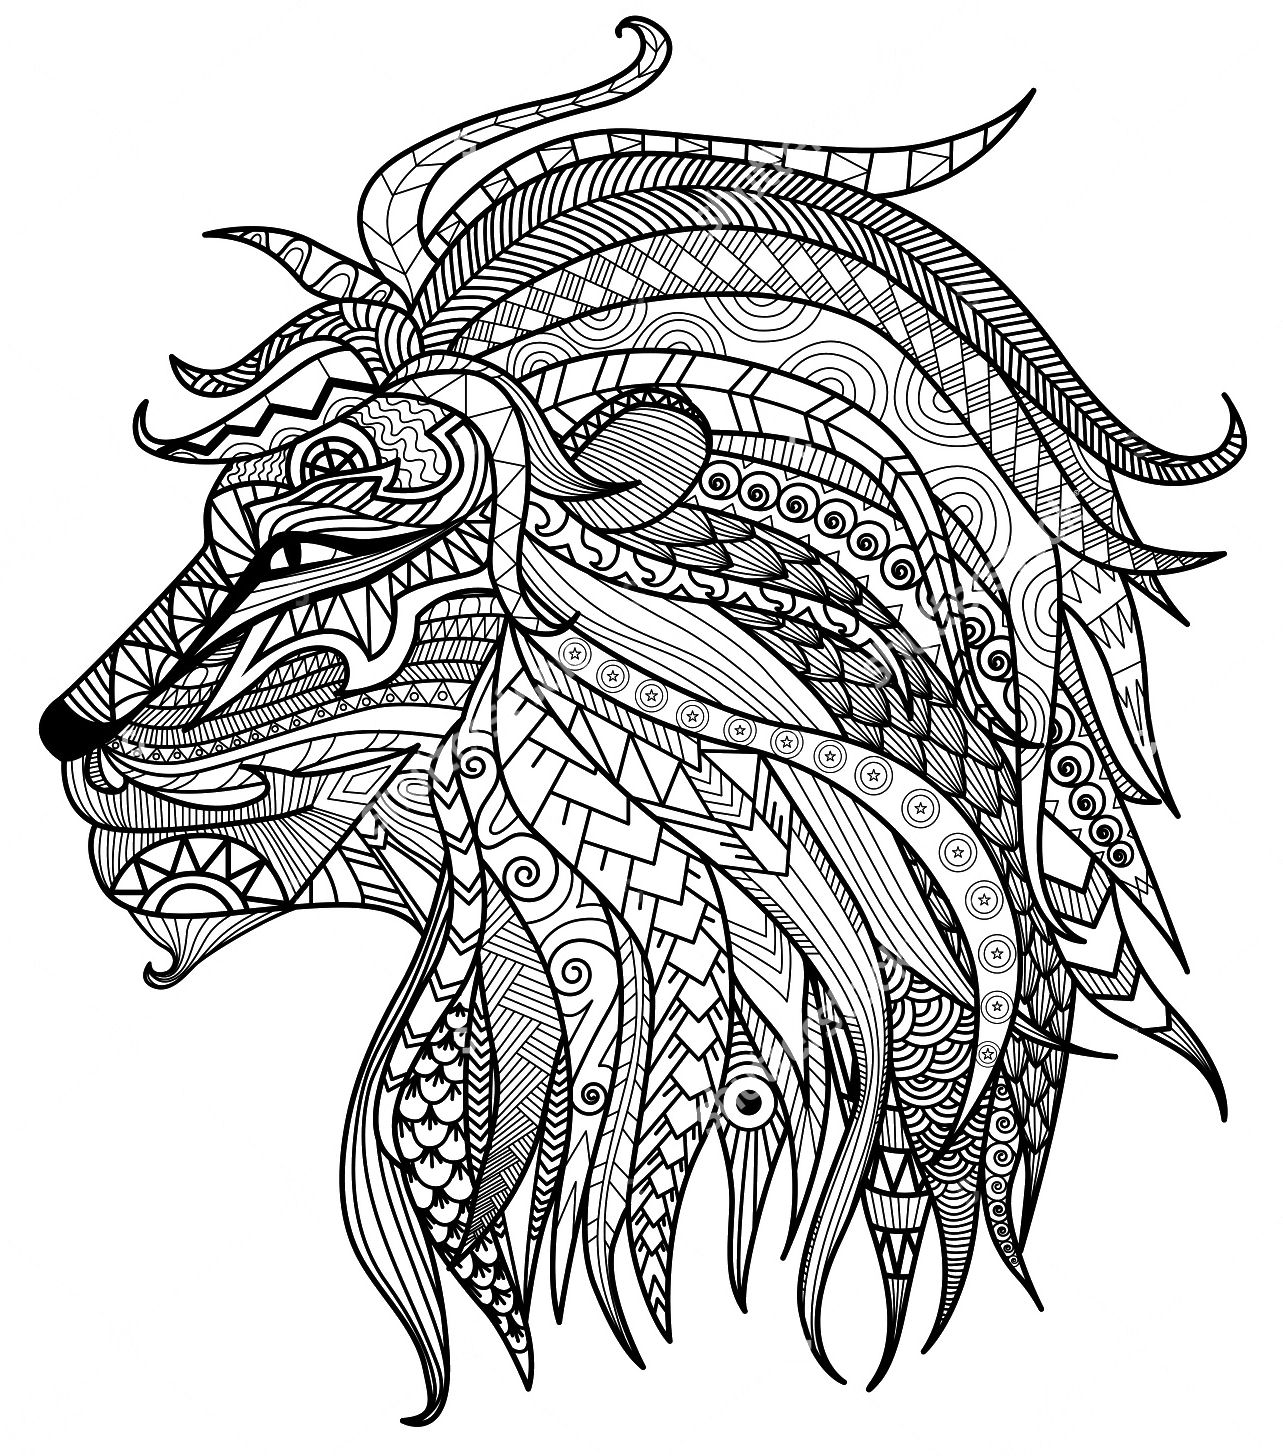 colouring images of lion free printable lion coloring pages for kids lion images of colouring